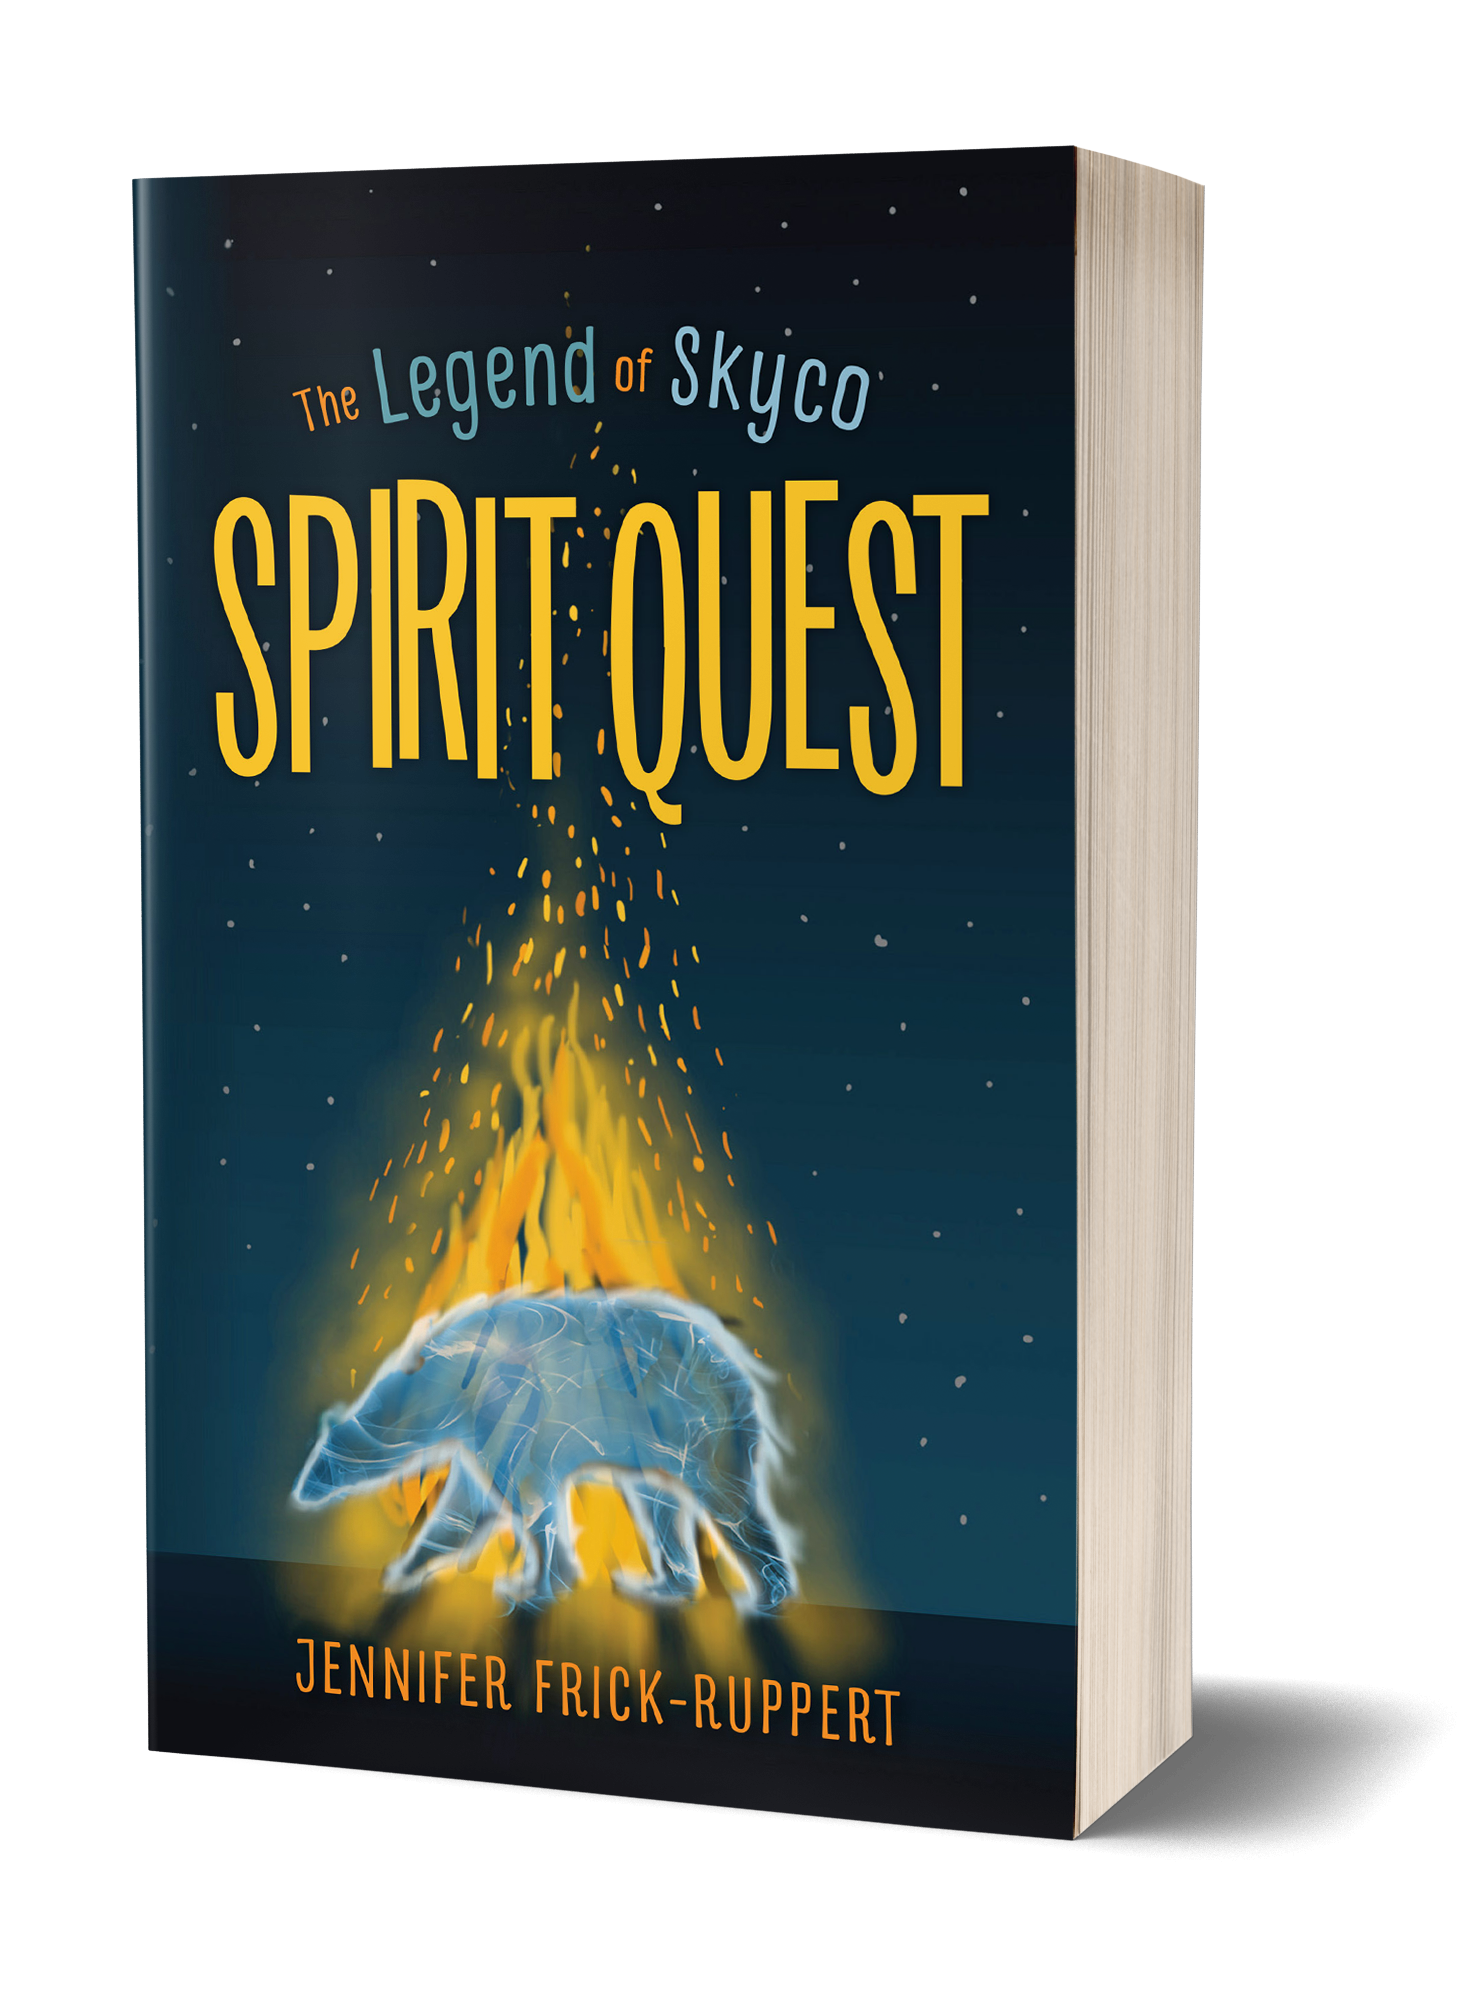 The Legend of Skyco: Spirit Quest book cover, spirit bear, walking around large fire, night time,